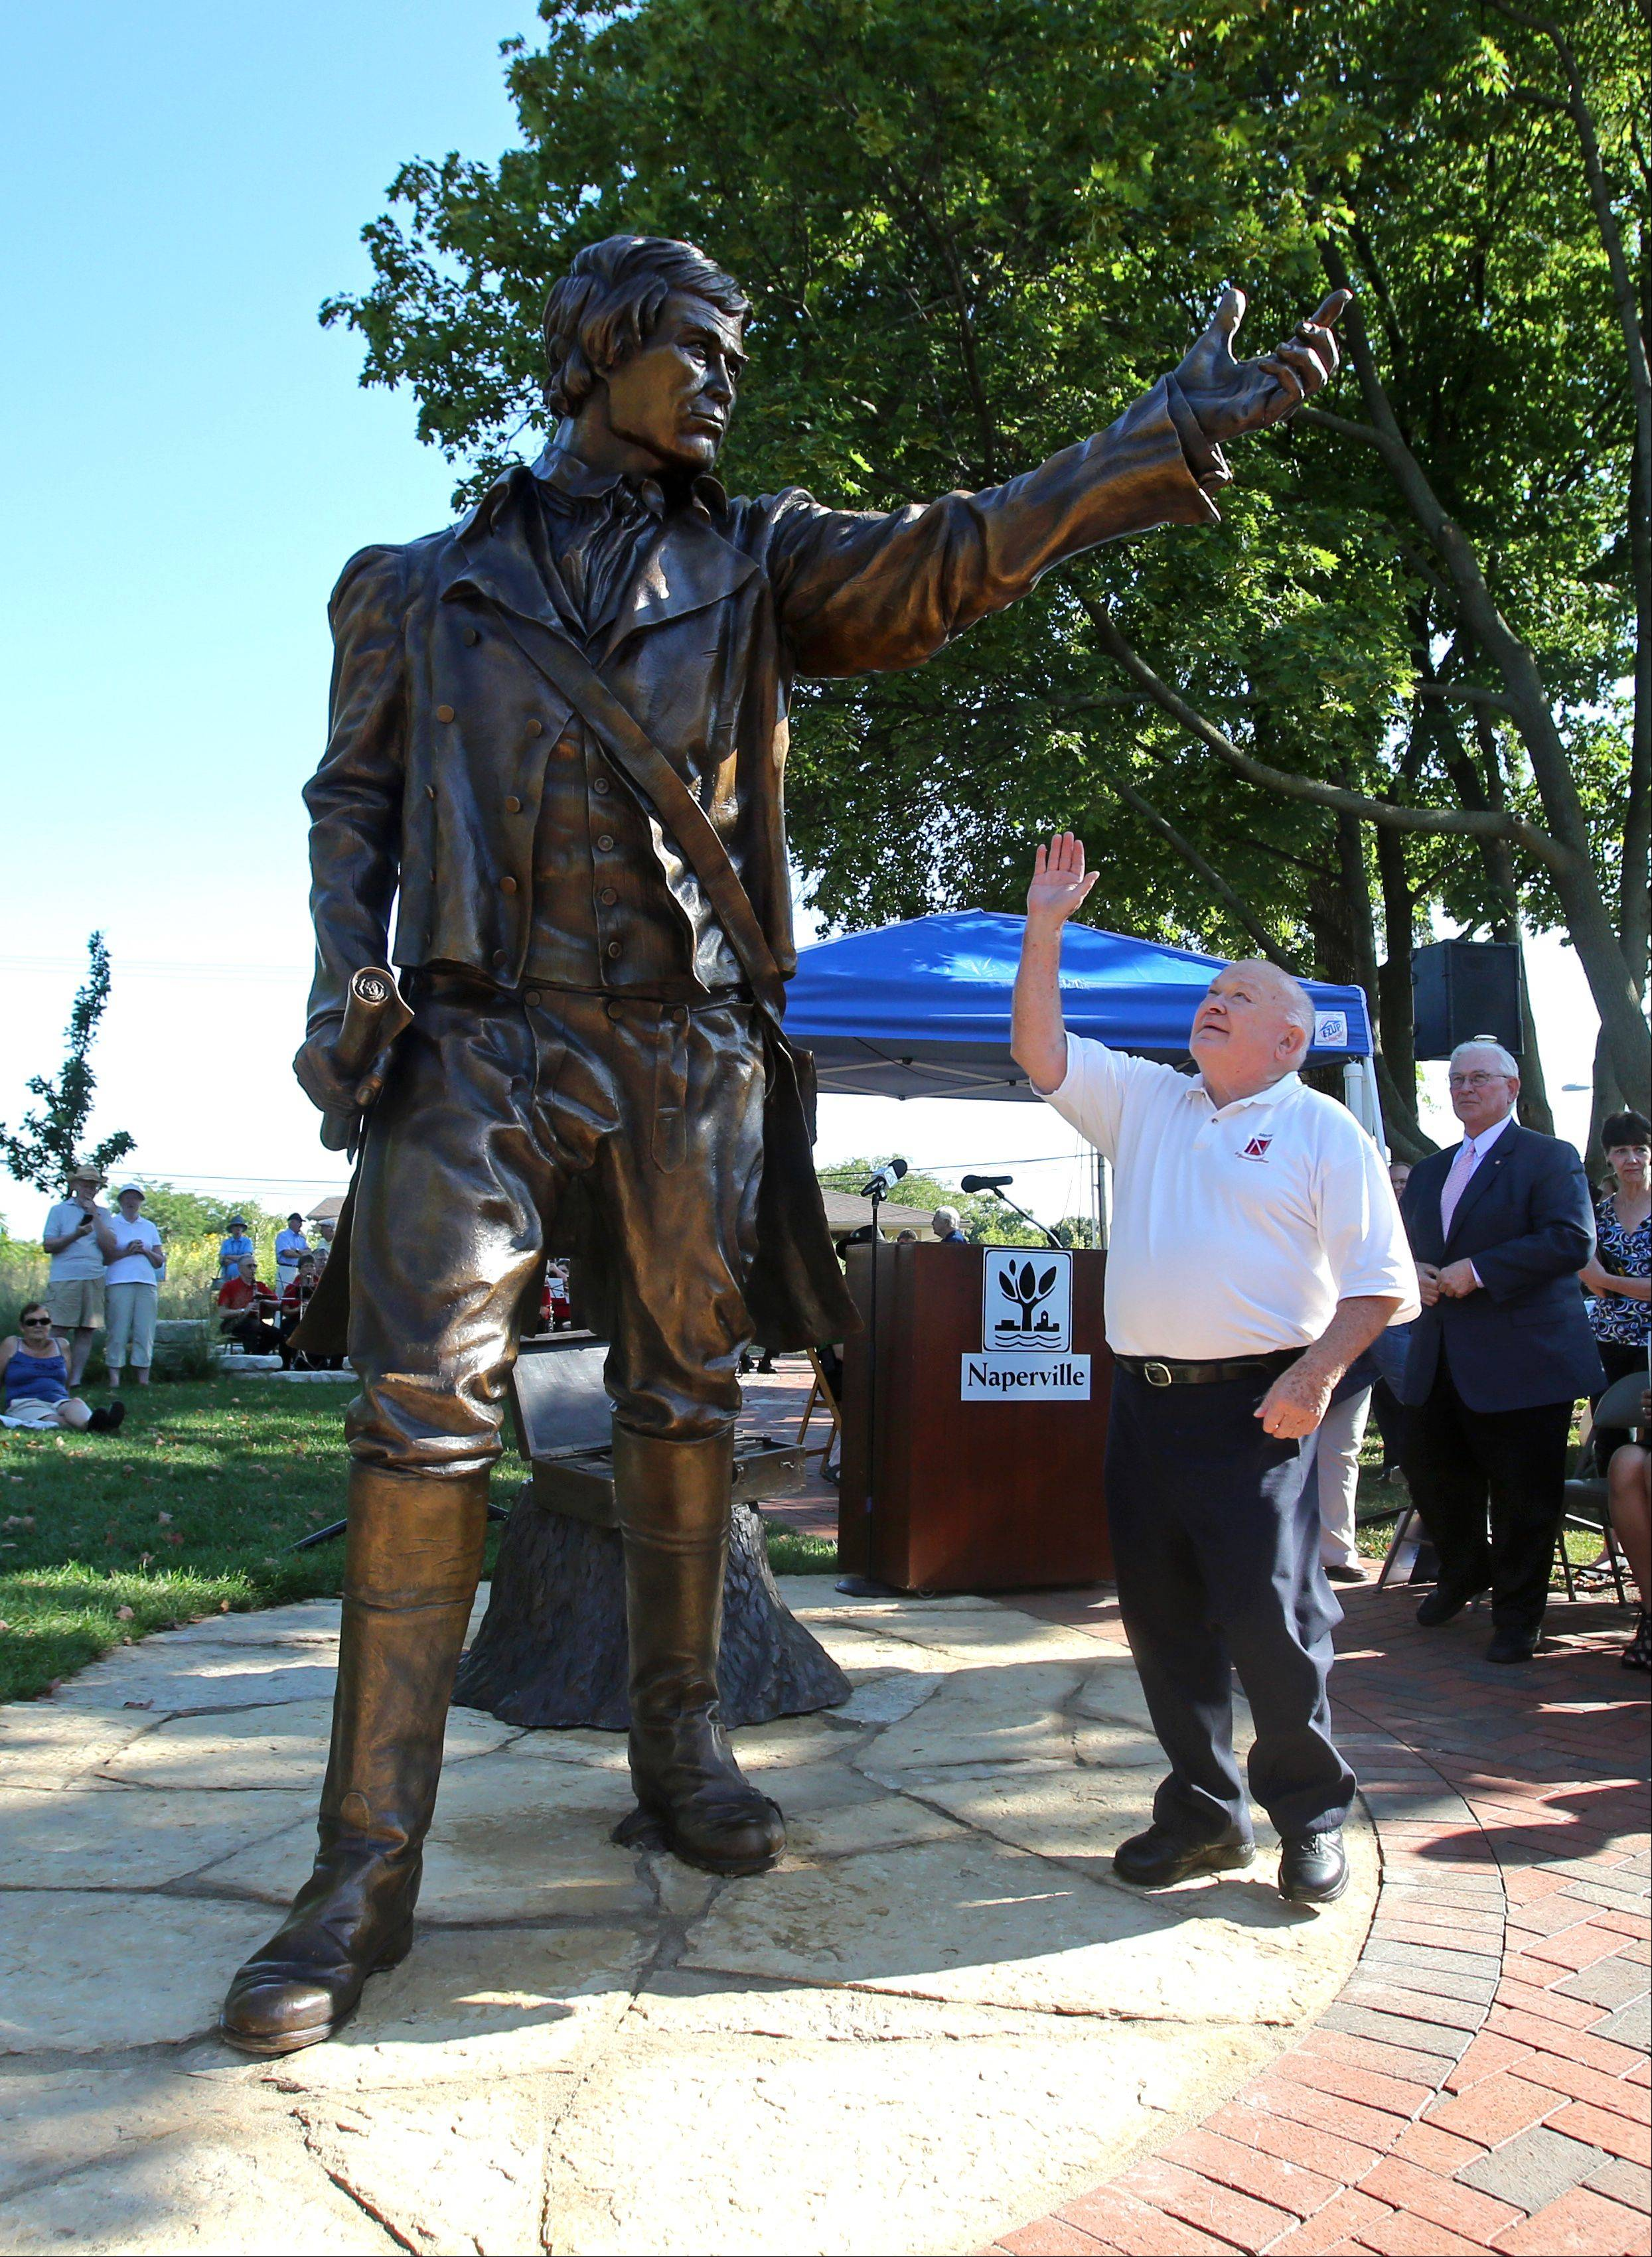 Naperville Mayor George Pradel looks up to the newly unveiled Joseph Naper statue at the Naper Homestead and tries to give the town's founder a high-five. The $185,000, 1,500-pound sculpture is cast in bronze and accompanied by a box of land surveyor's tools.